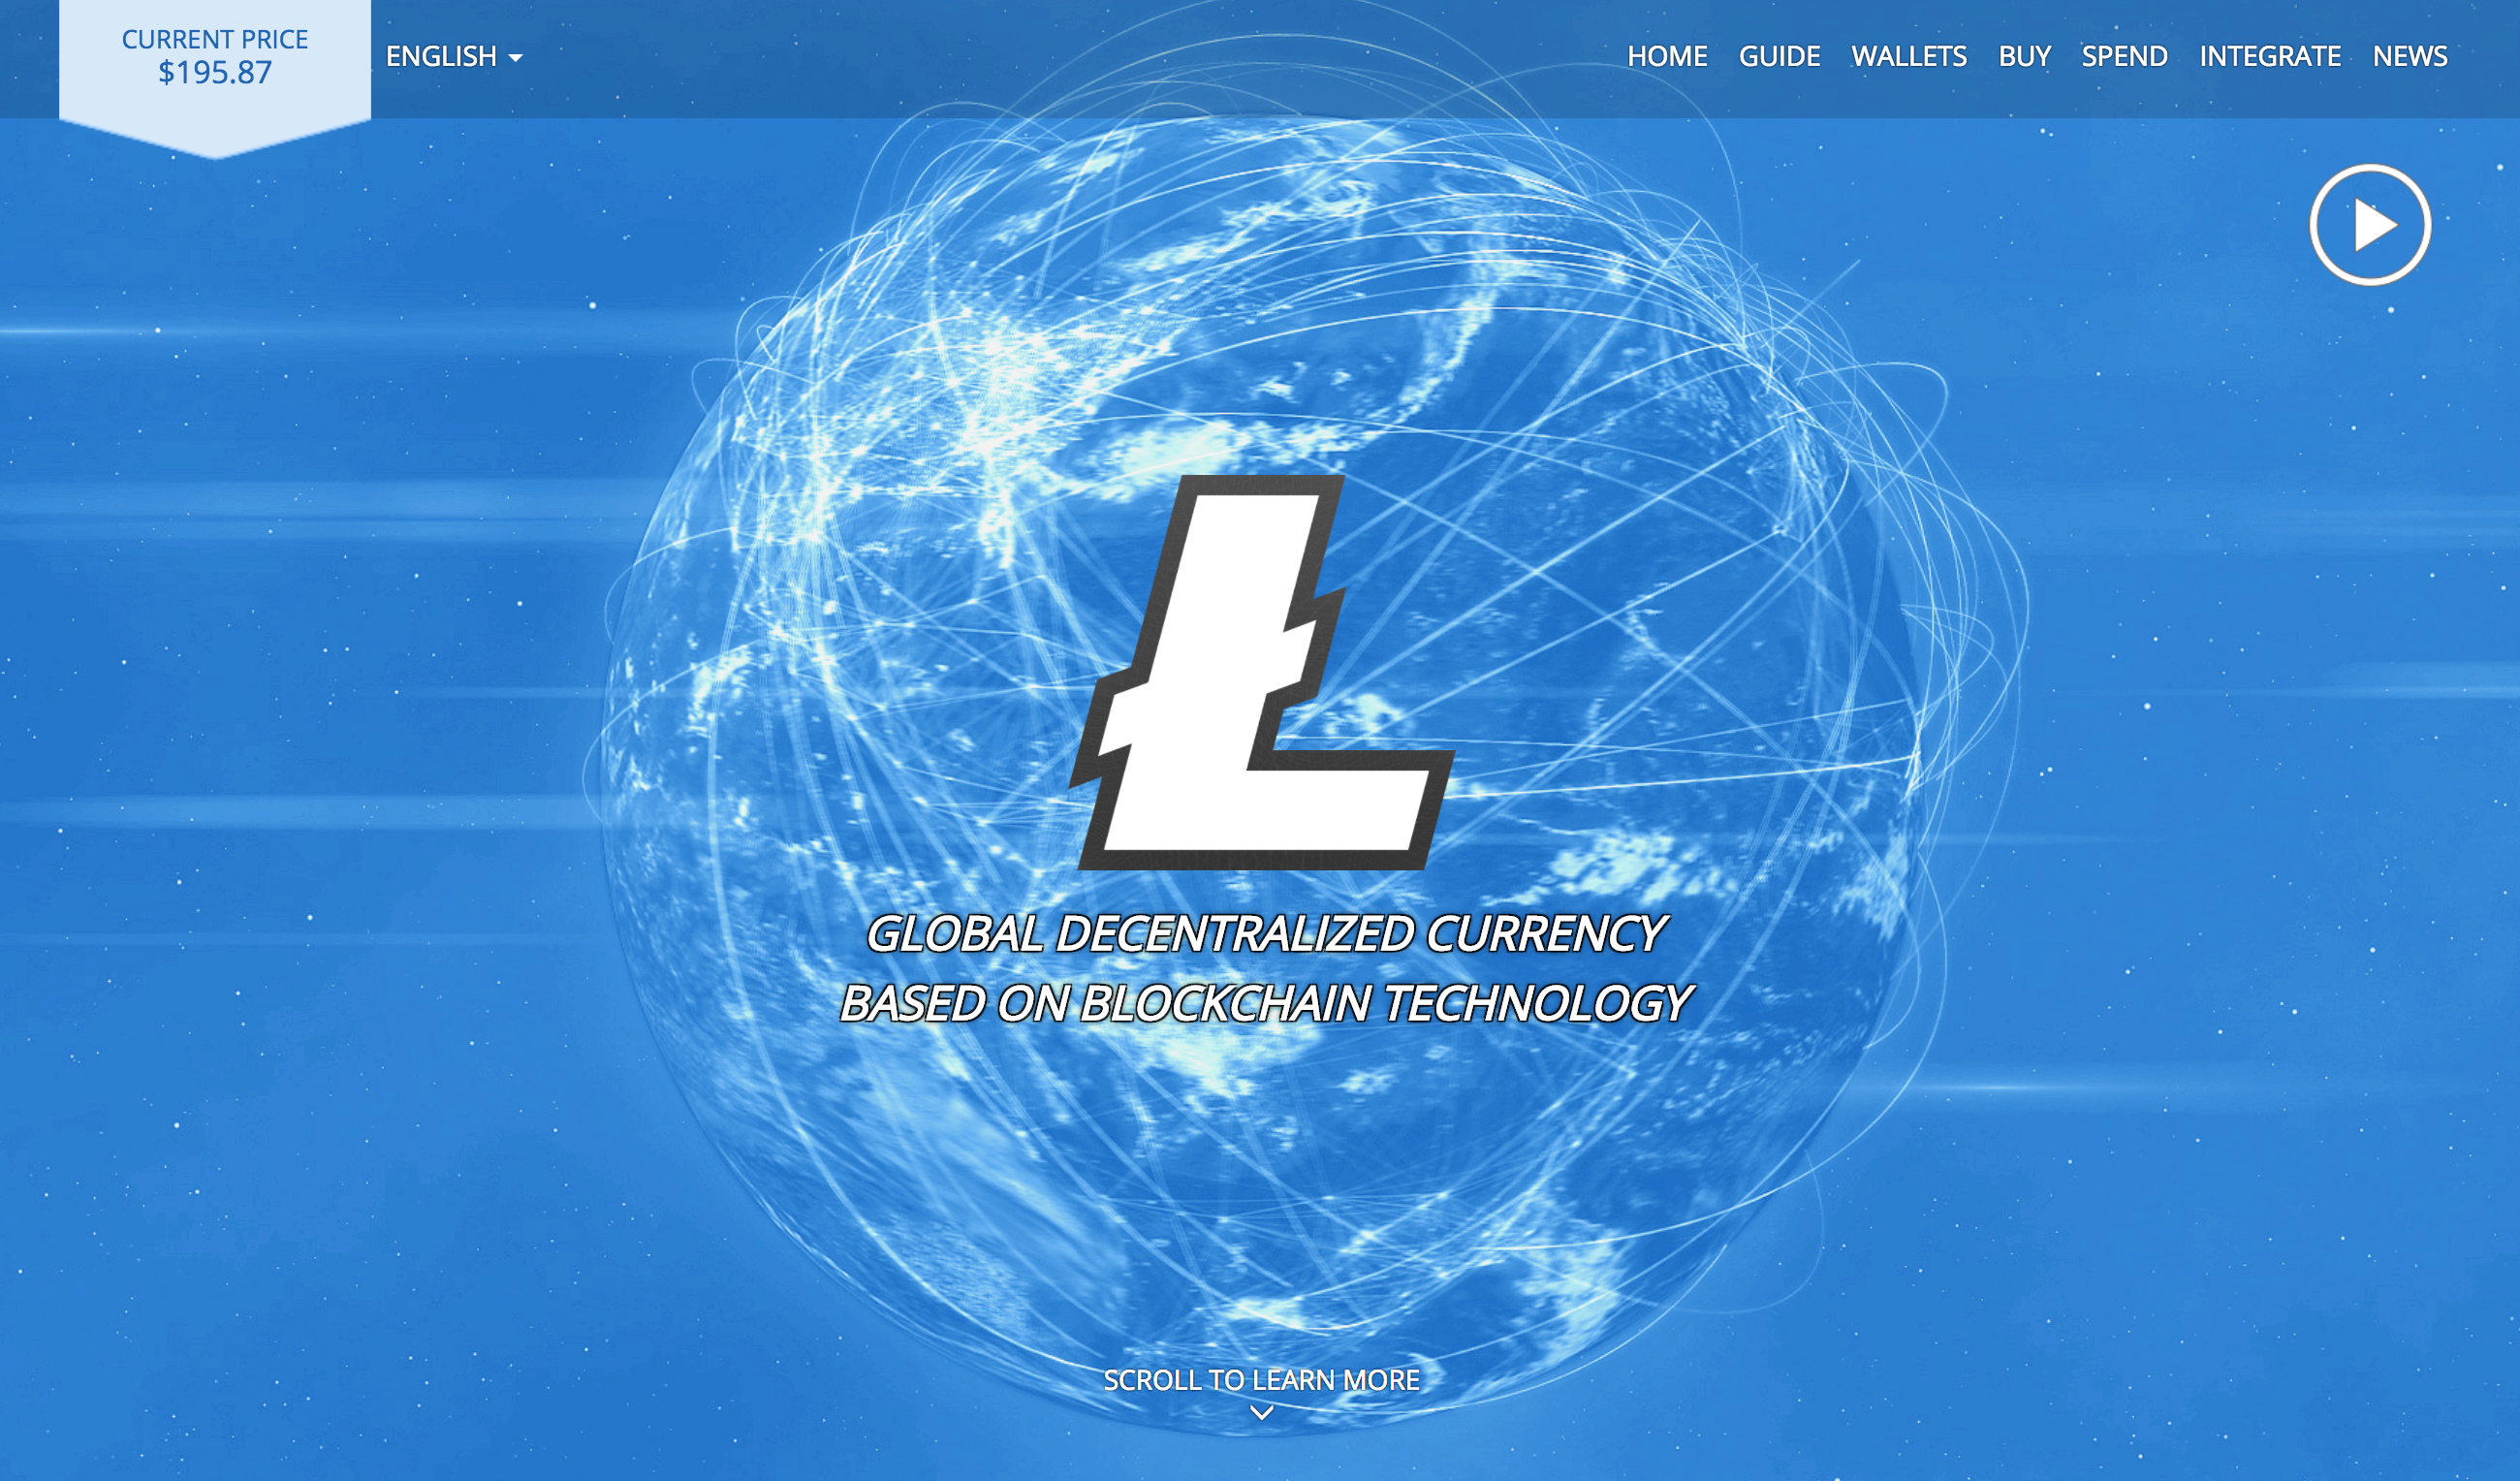 Screenshot from the Litecoin website.